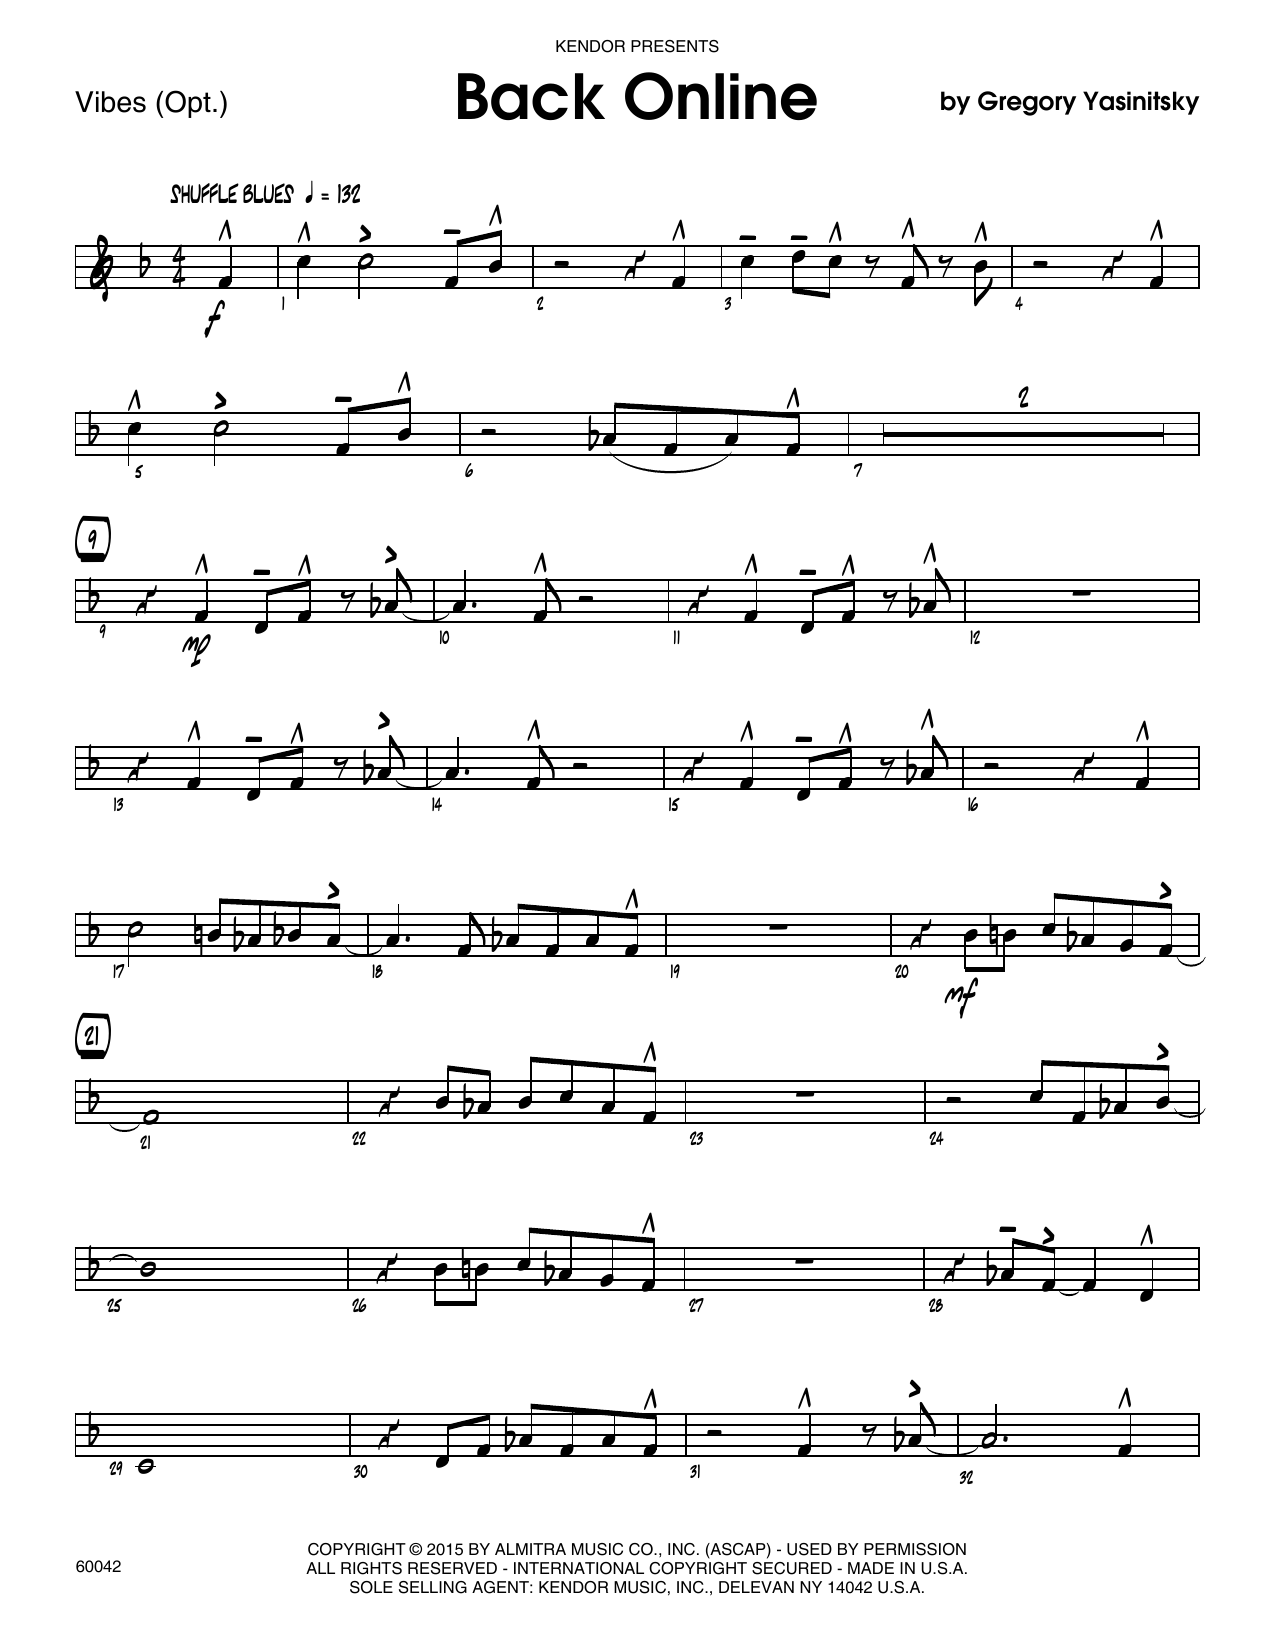 Back Online - Vibes Sheet Music